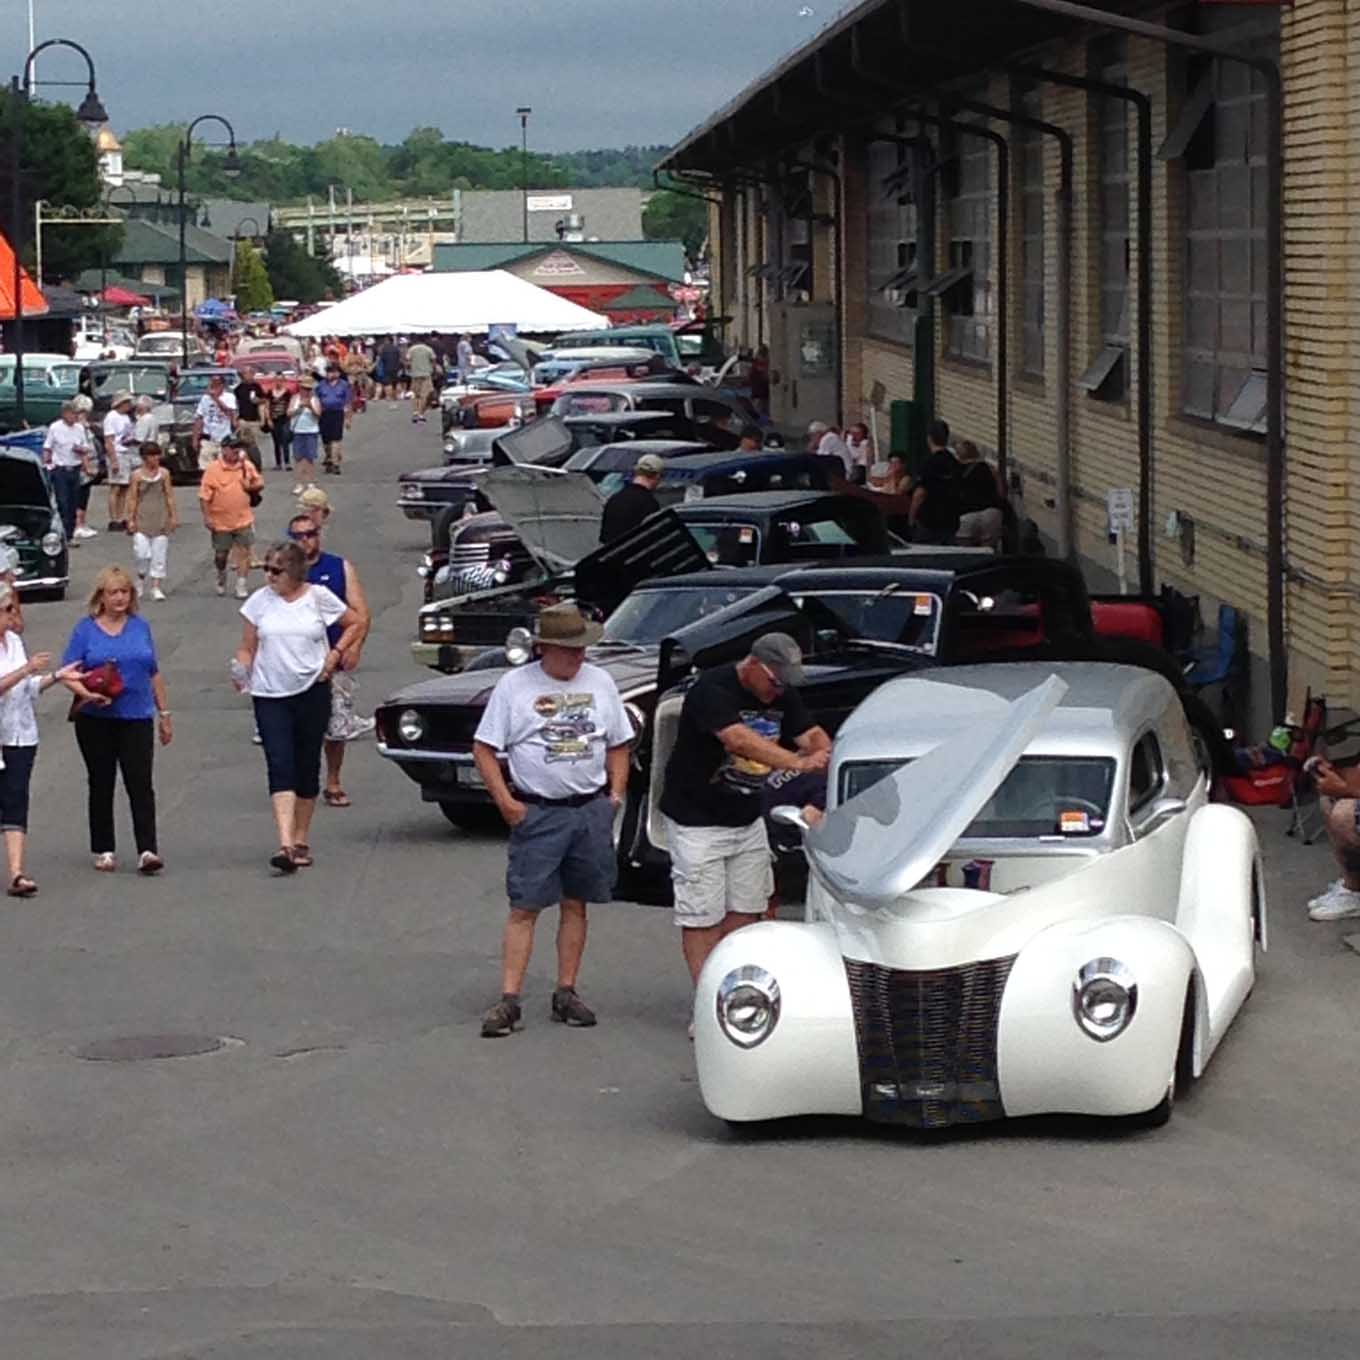 Participants and spectators covered the New York State Fairgrounds during the Syracuse Nationals weekend. This year saw a new record of over 8,000 participating vehicles and great weather brought out huge spectator crowds.